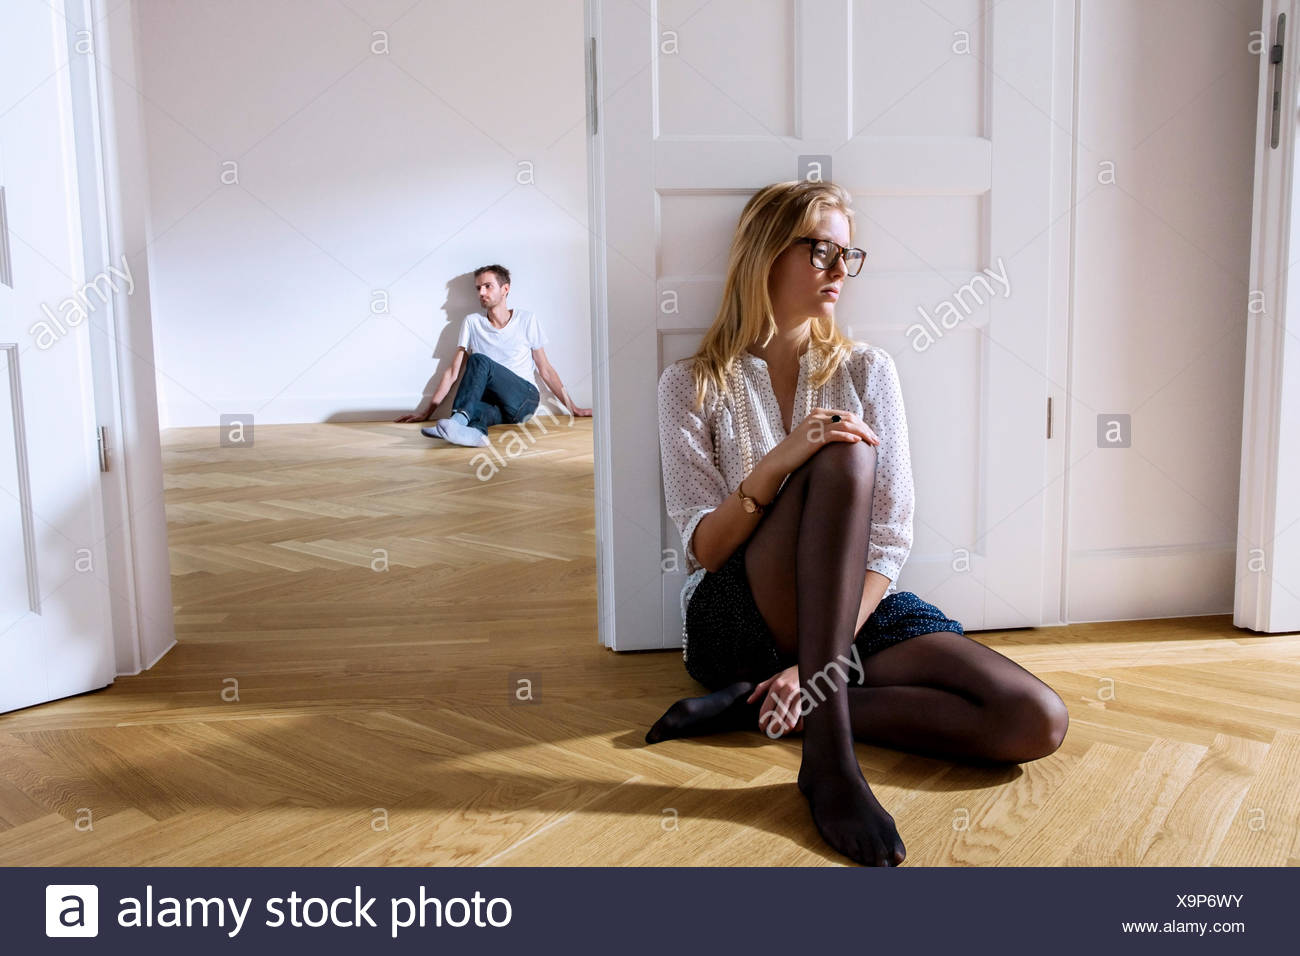 Pensive young woman in empty apartment with man in background - Stock Image